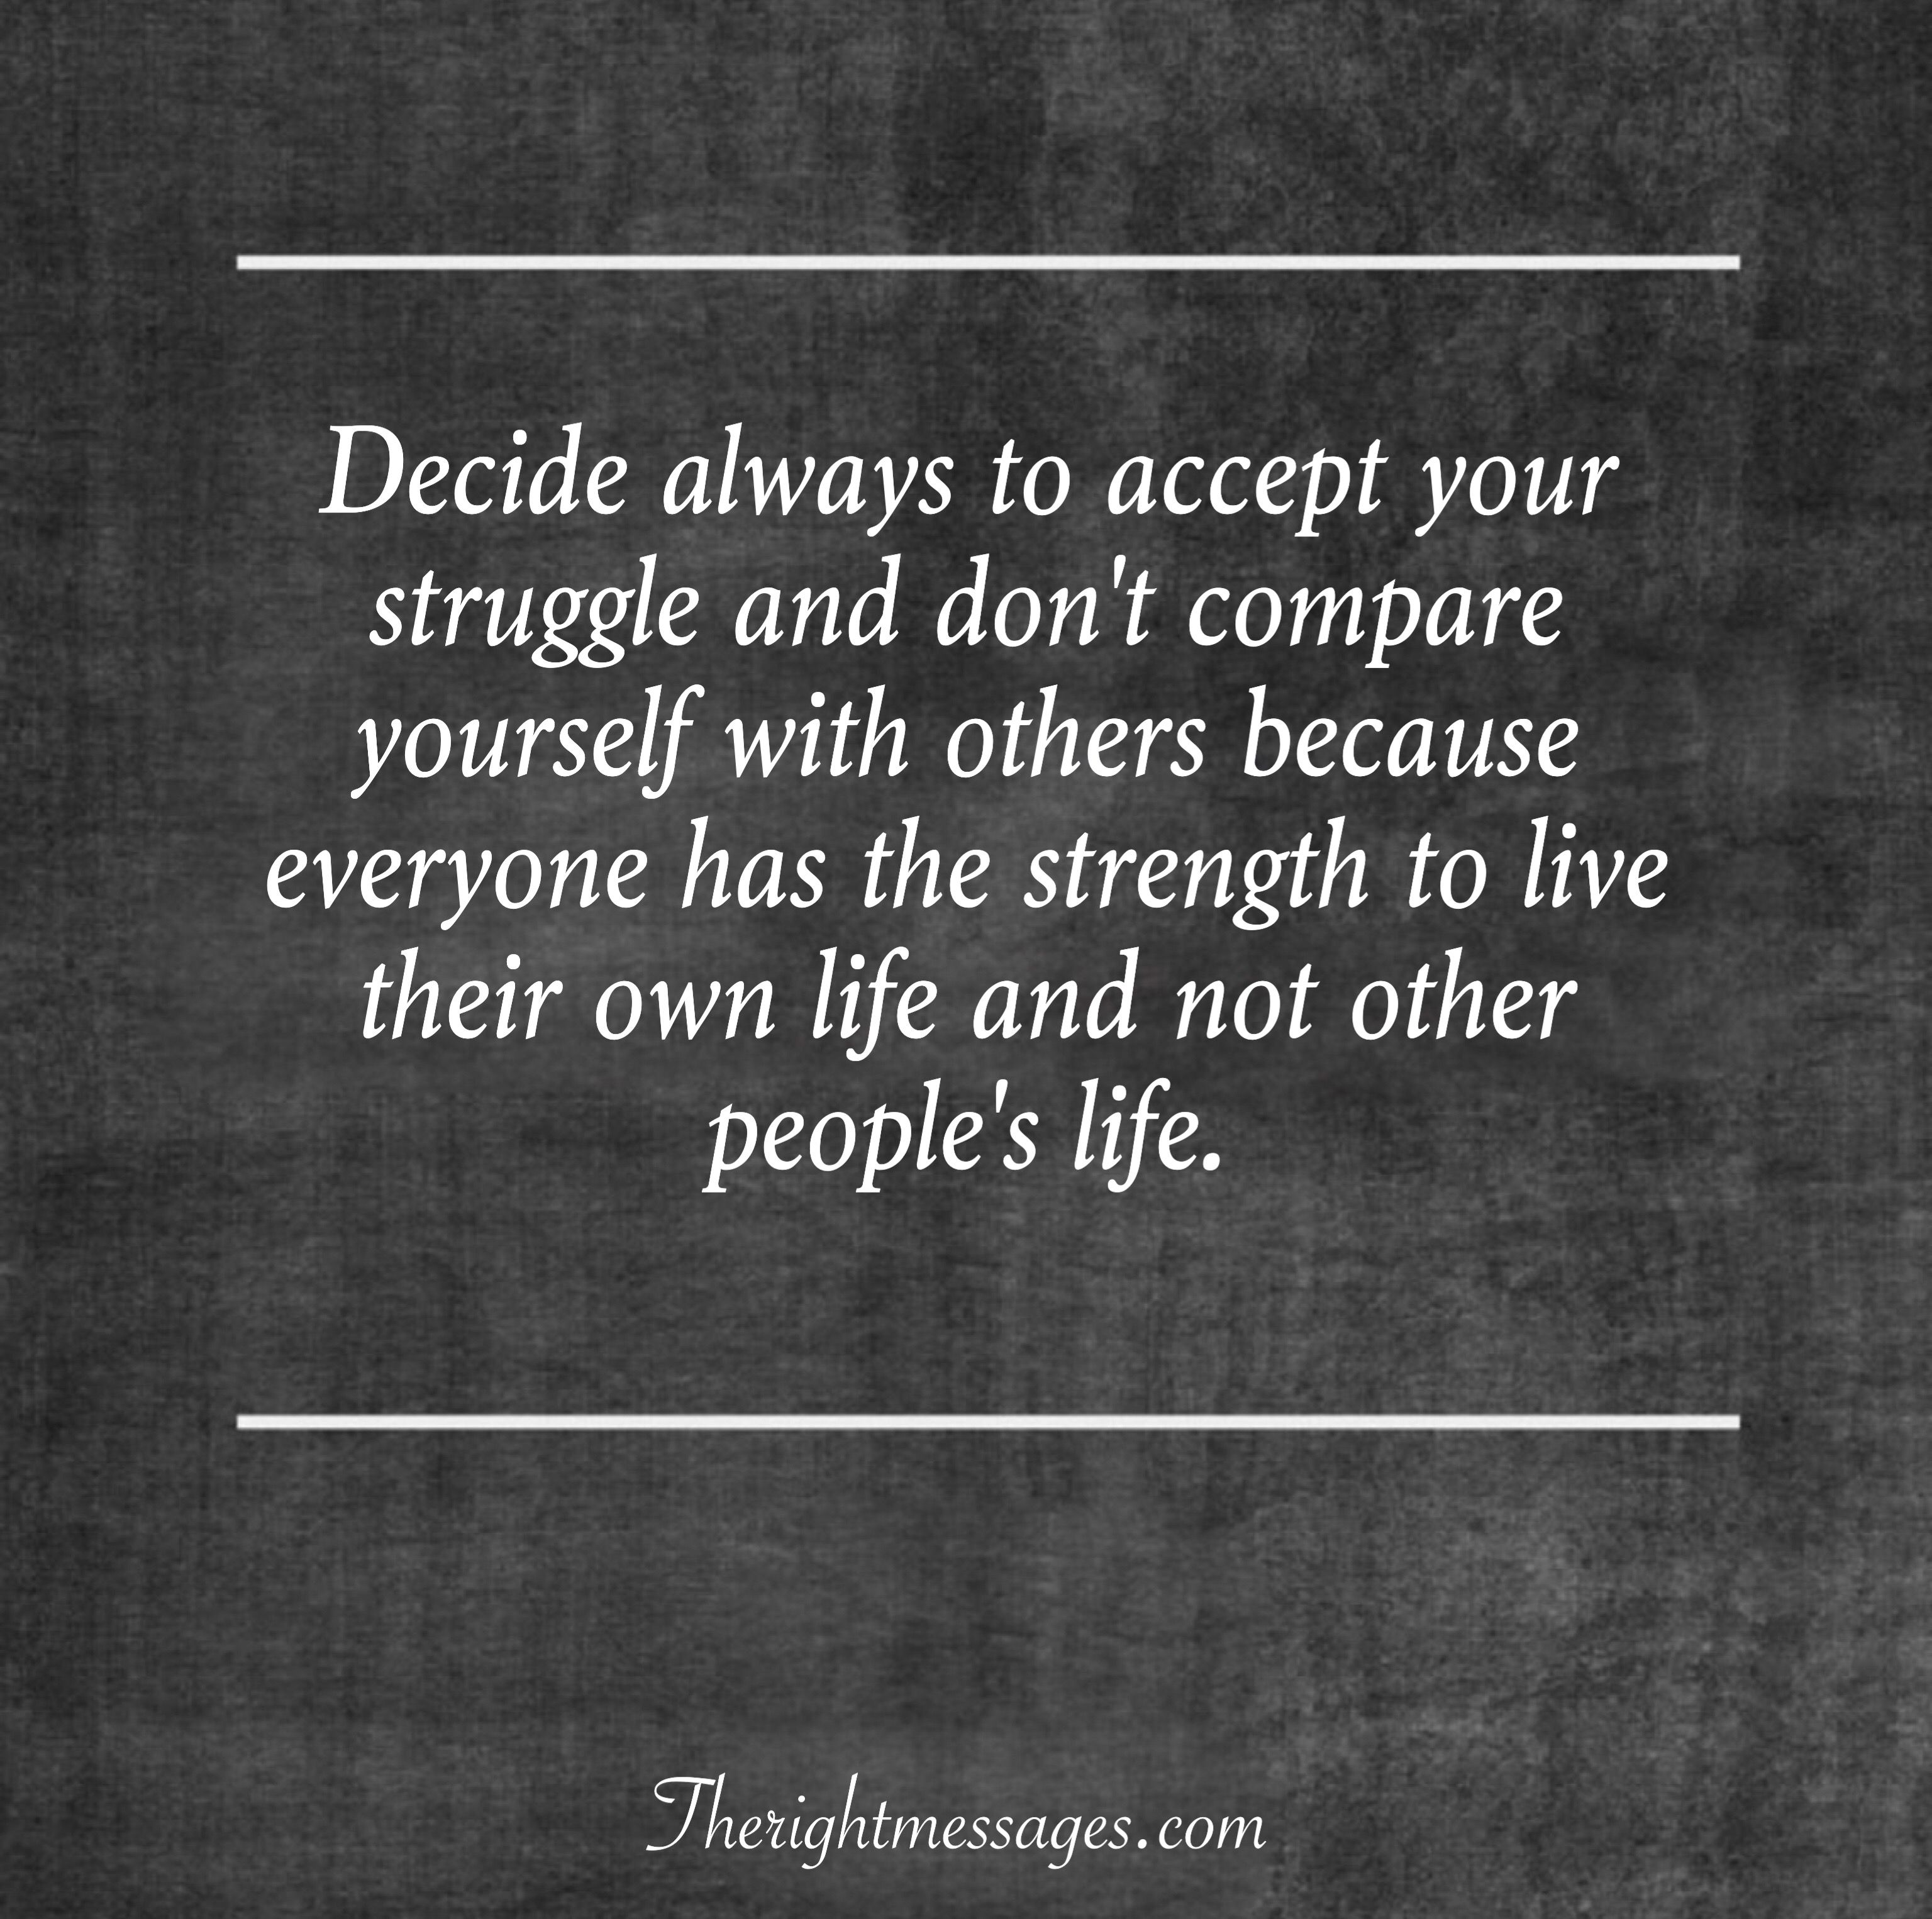 31 Inspirational Quotes About Life And Struggles The Right Messages Life Quotes Movie Quotes Inspirational Friday Inspirational Quotes